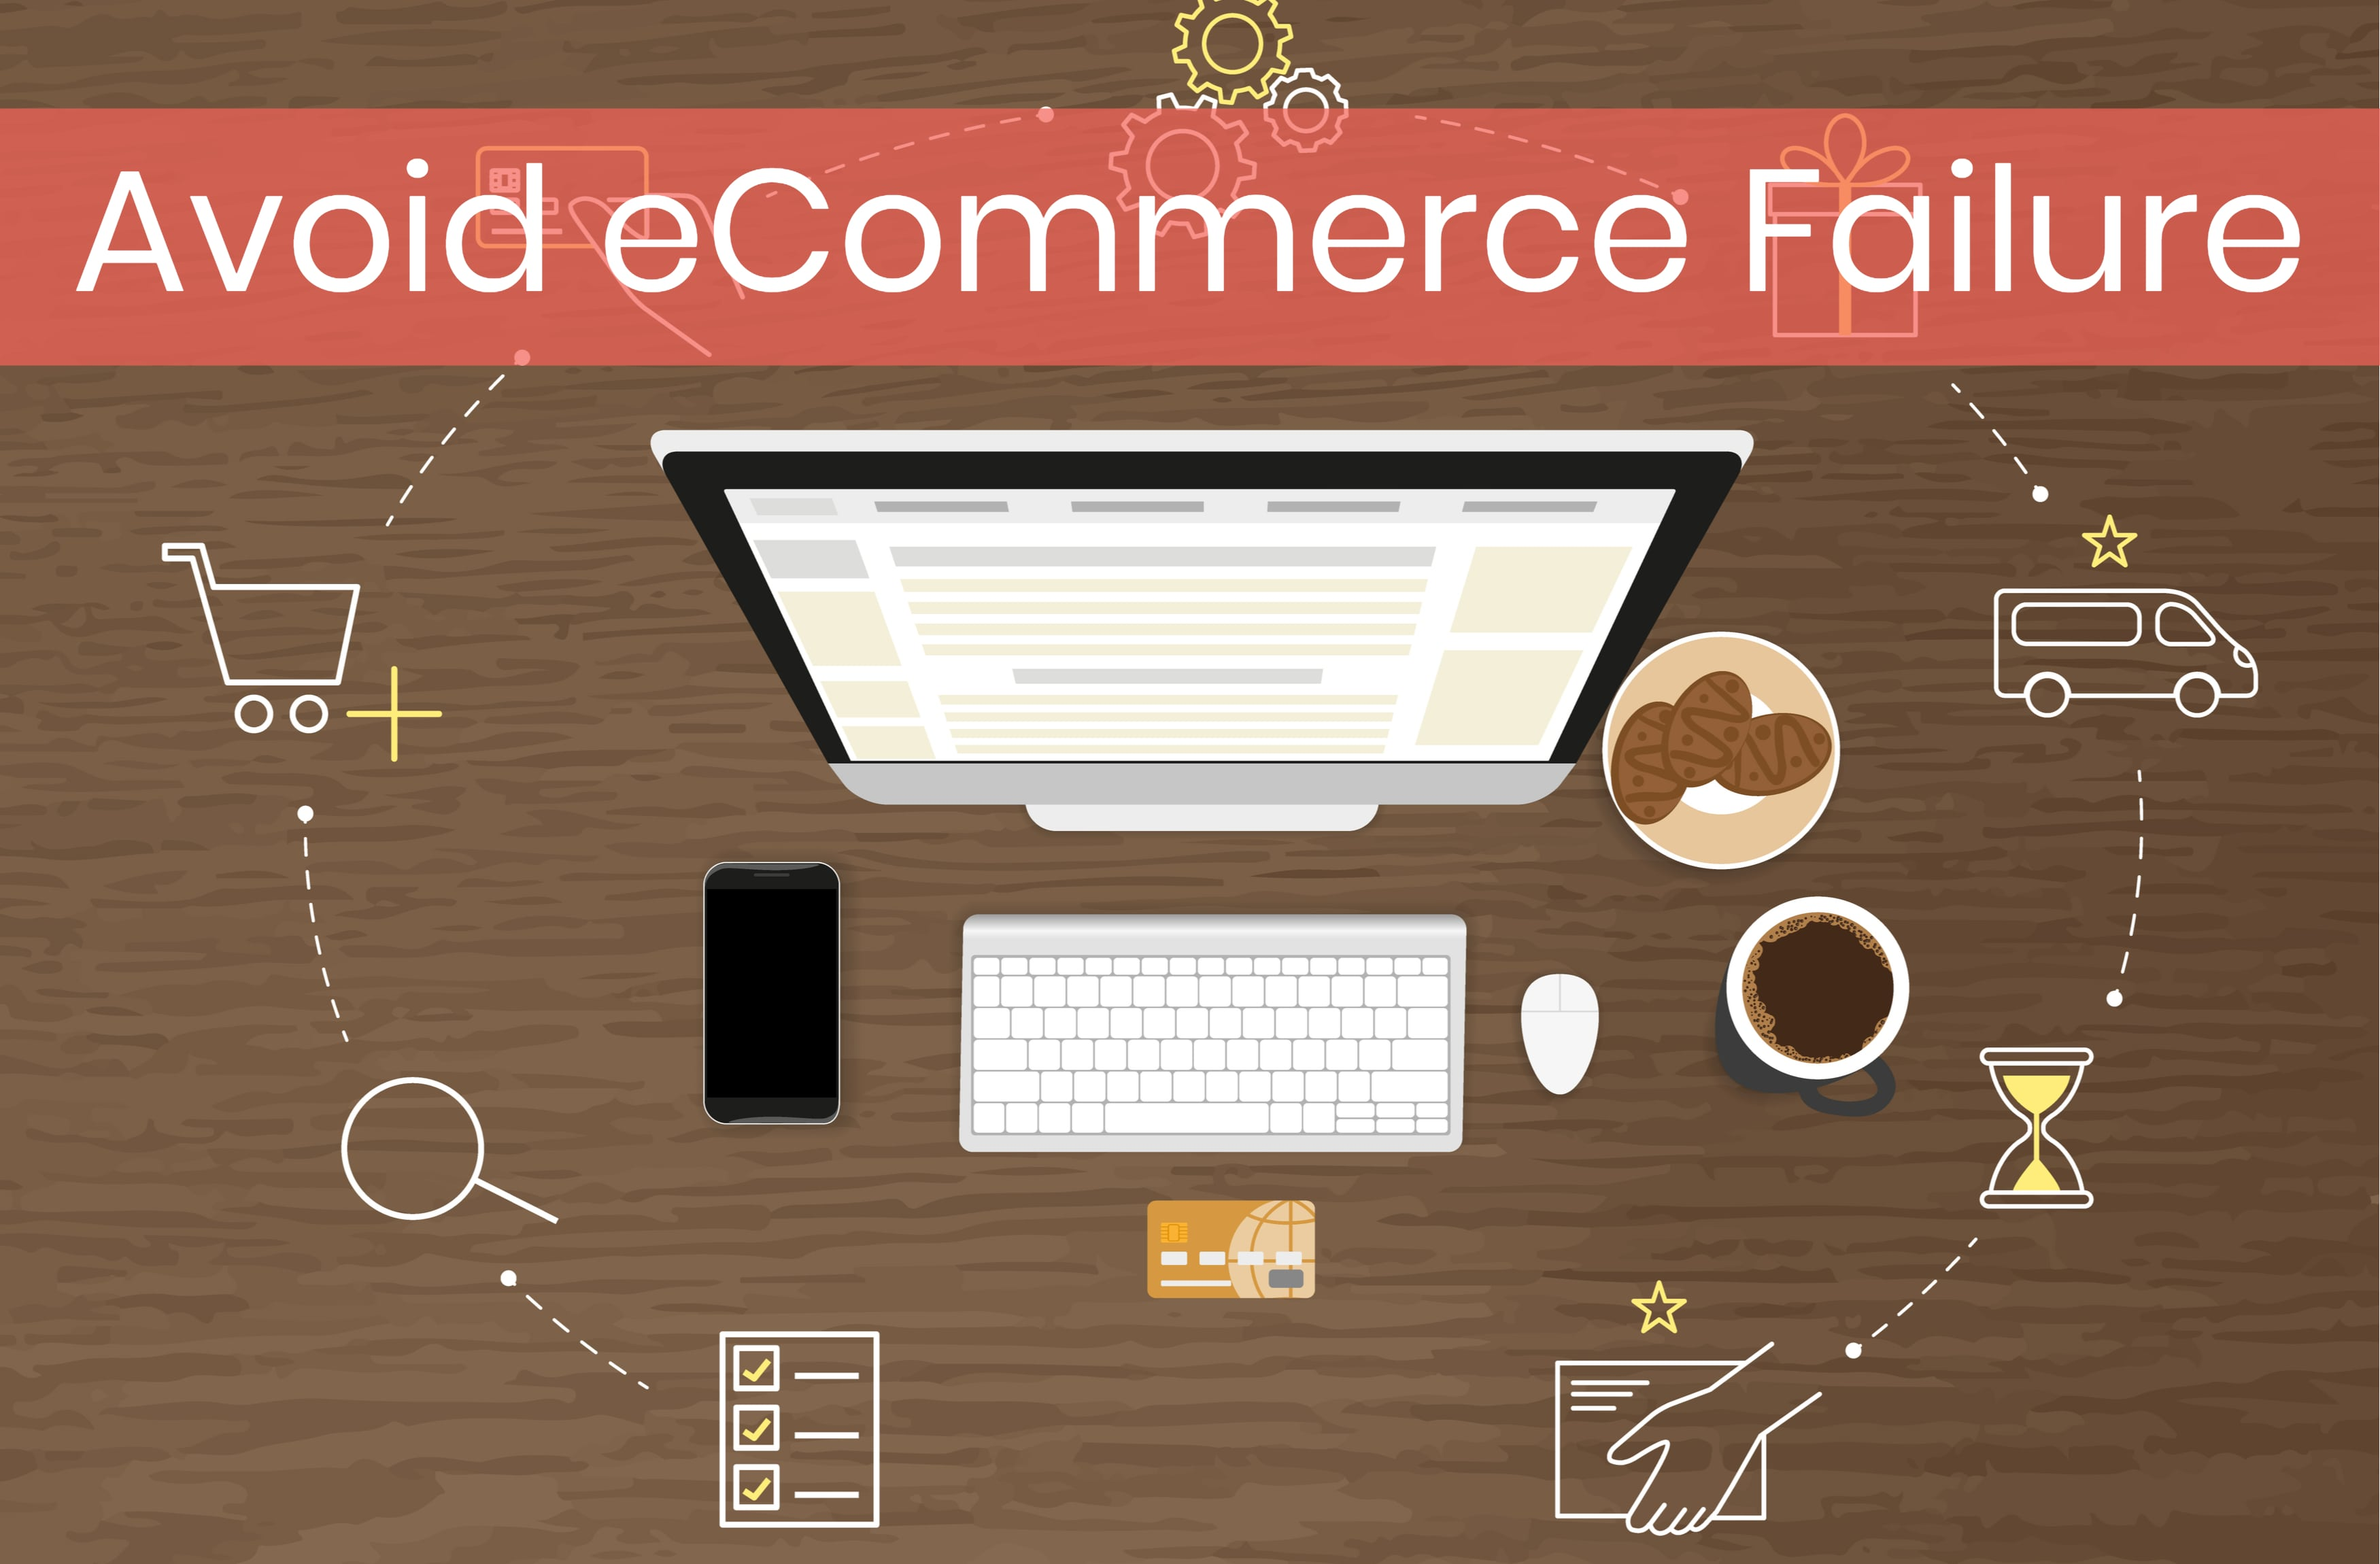 How to Avoid eCommerce Failure